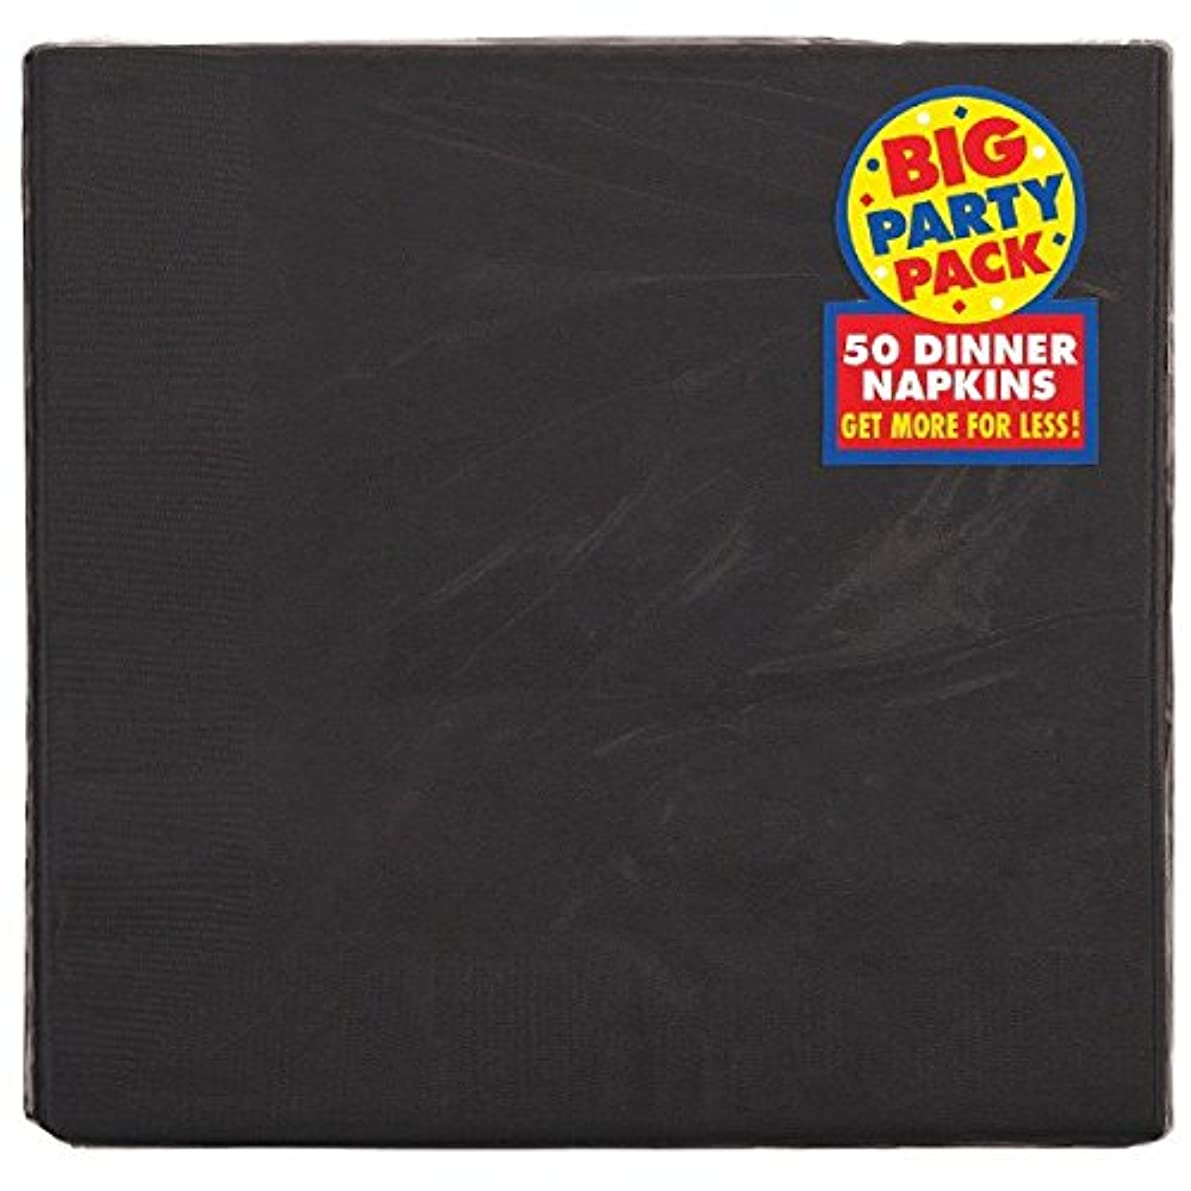 amscan Big Party Pack 2-Ply Dinner Napkins | Jet Black | Pack of 50 | Party Supply